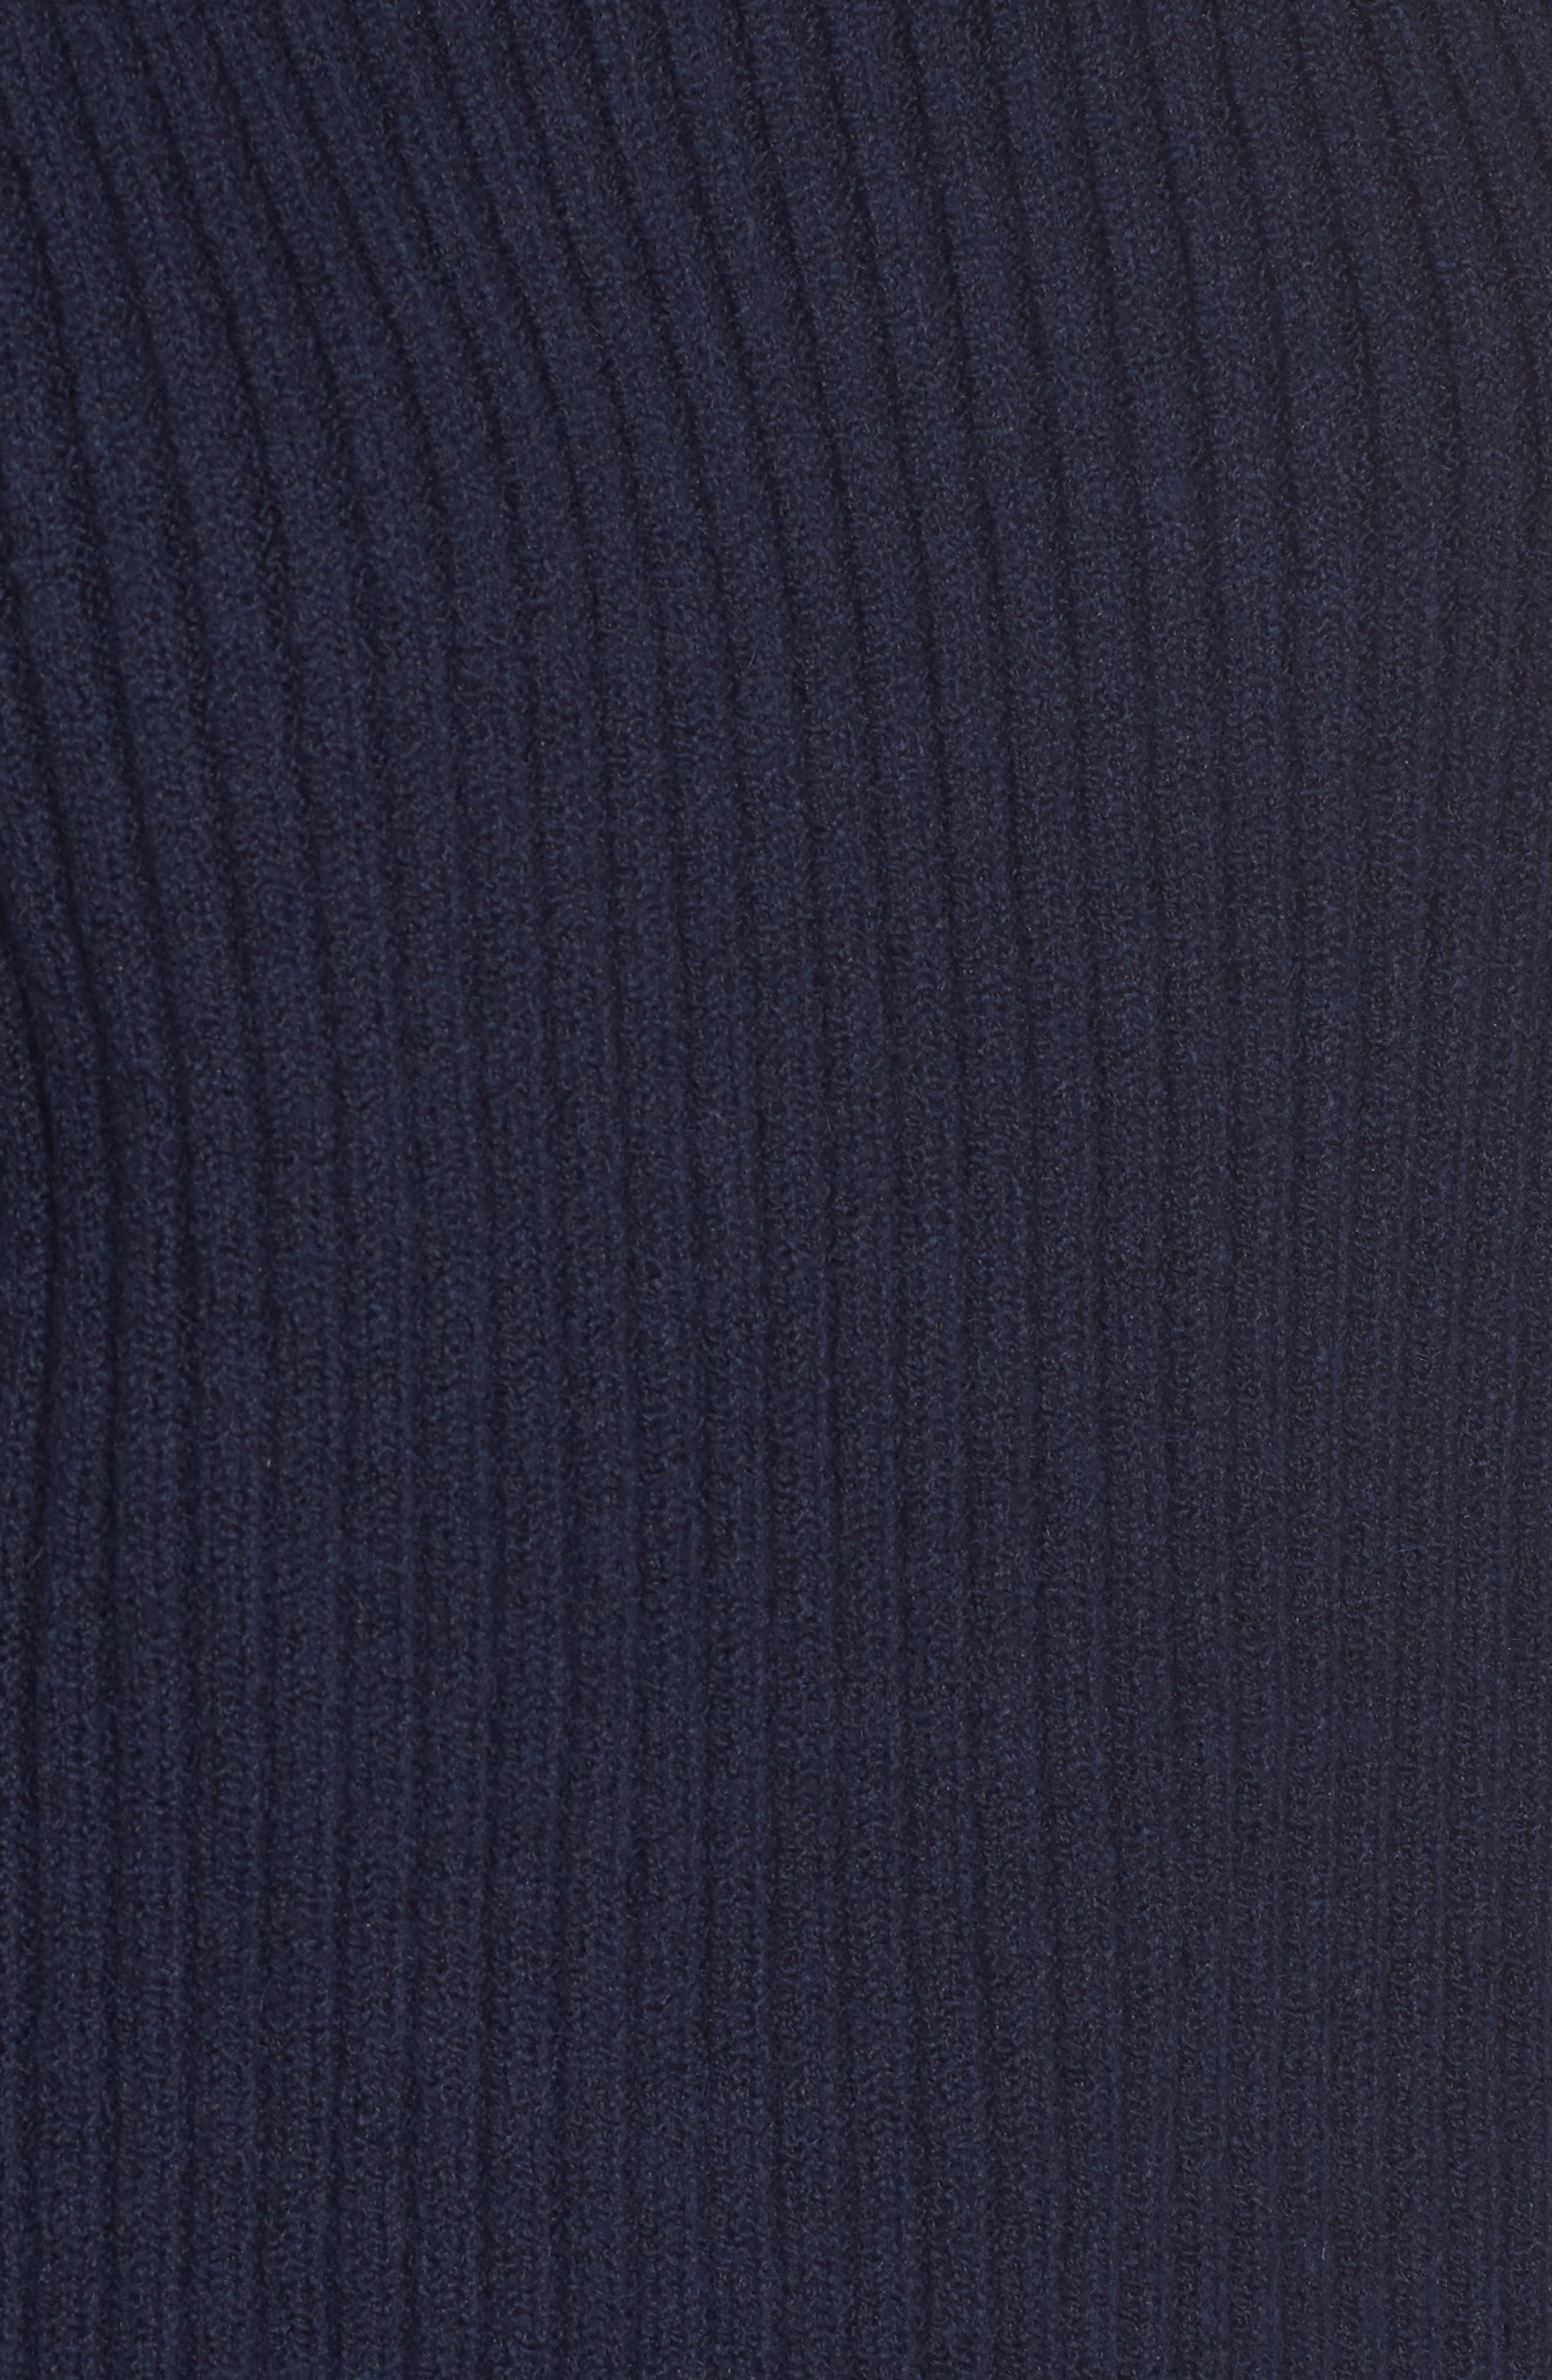 Quilted Sleeve Sweater,                             Alternate thumbnail 5, color,                             INDIGO